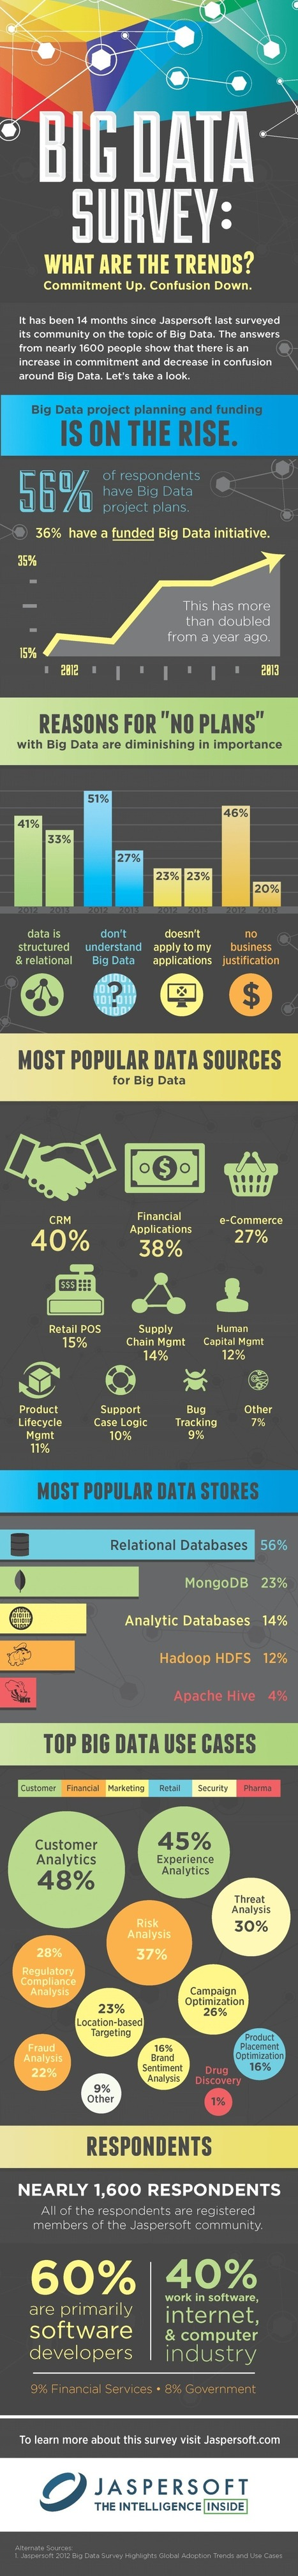 Big Data Survey: What Are the Trends? [Infographic] - Business 2 Community | Social Media Measurement, Analytics & ROI | Scoop.it